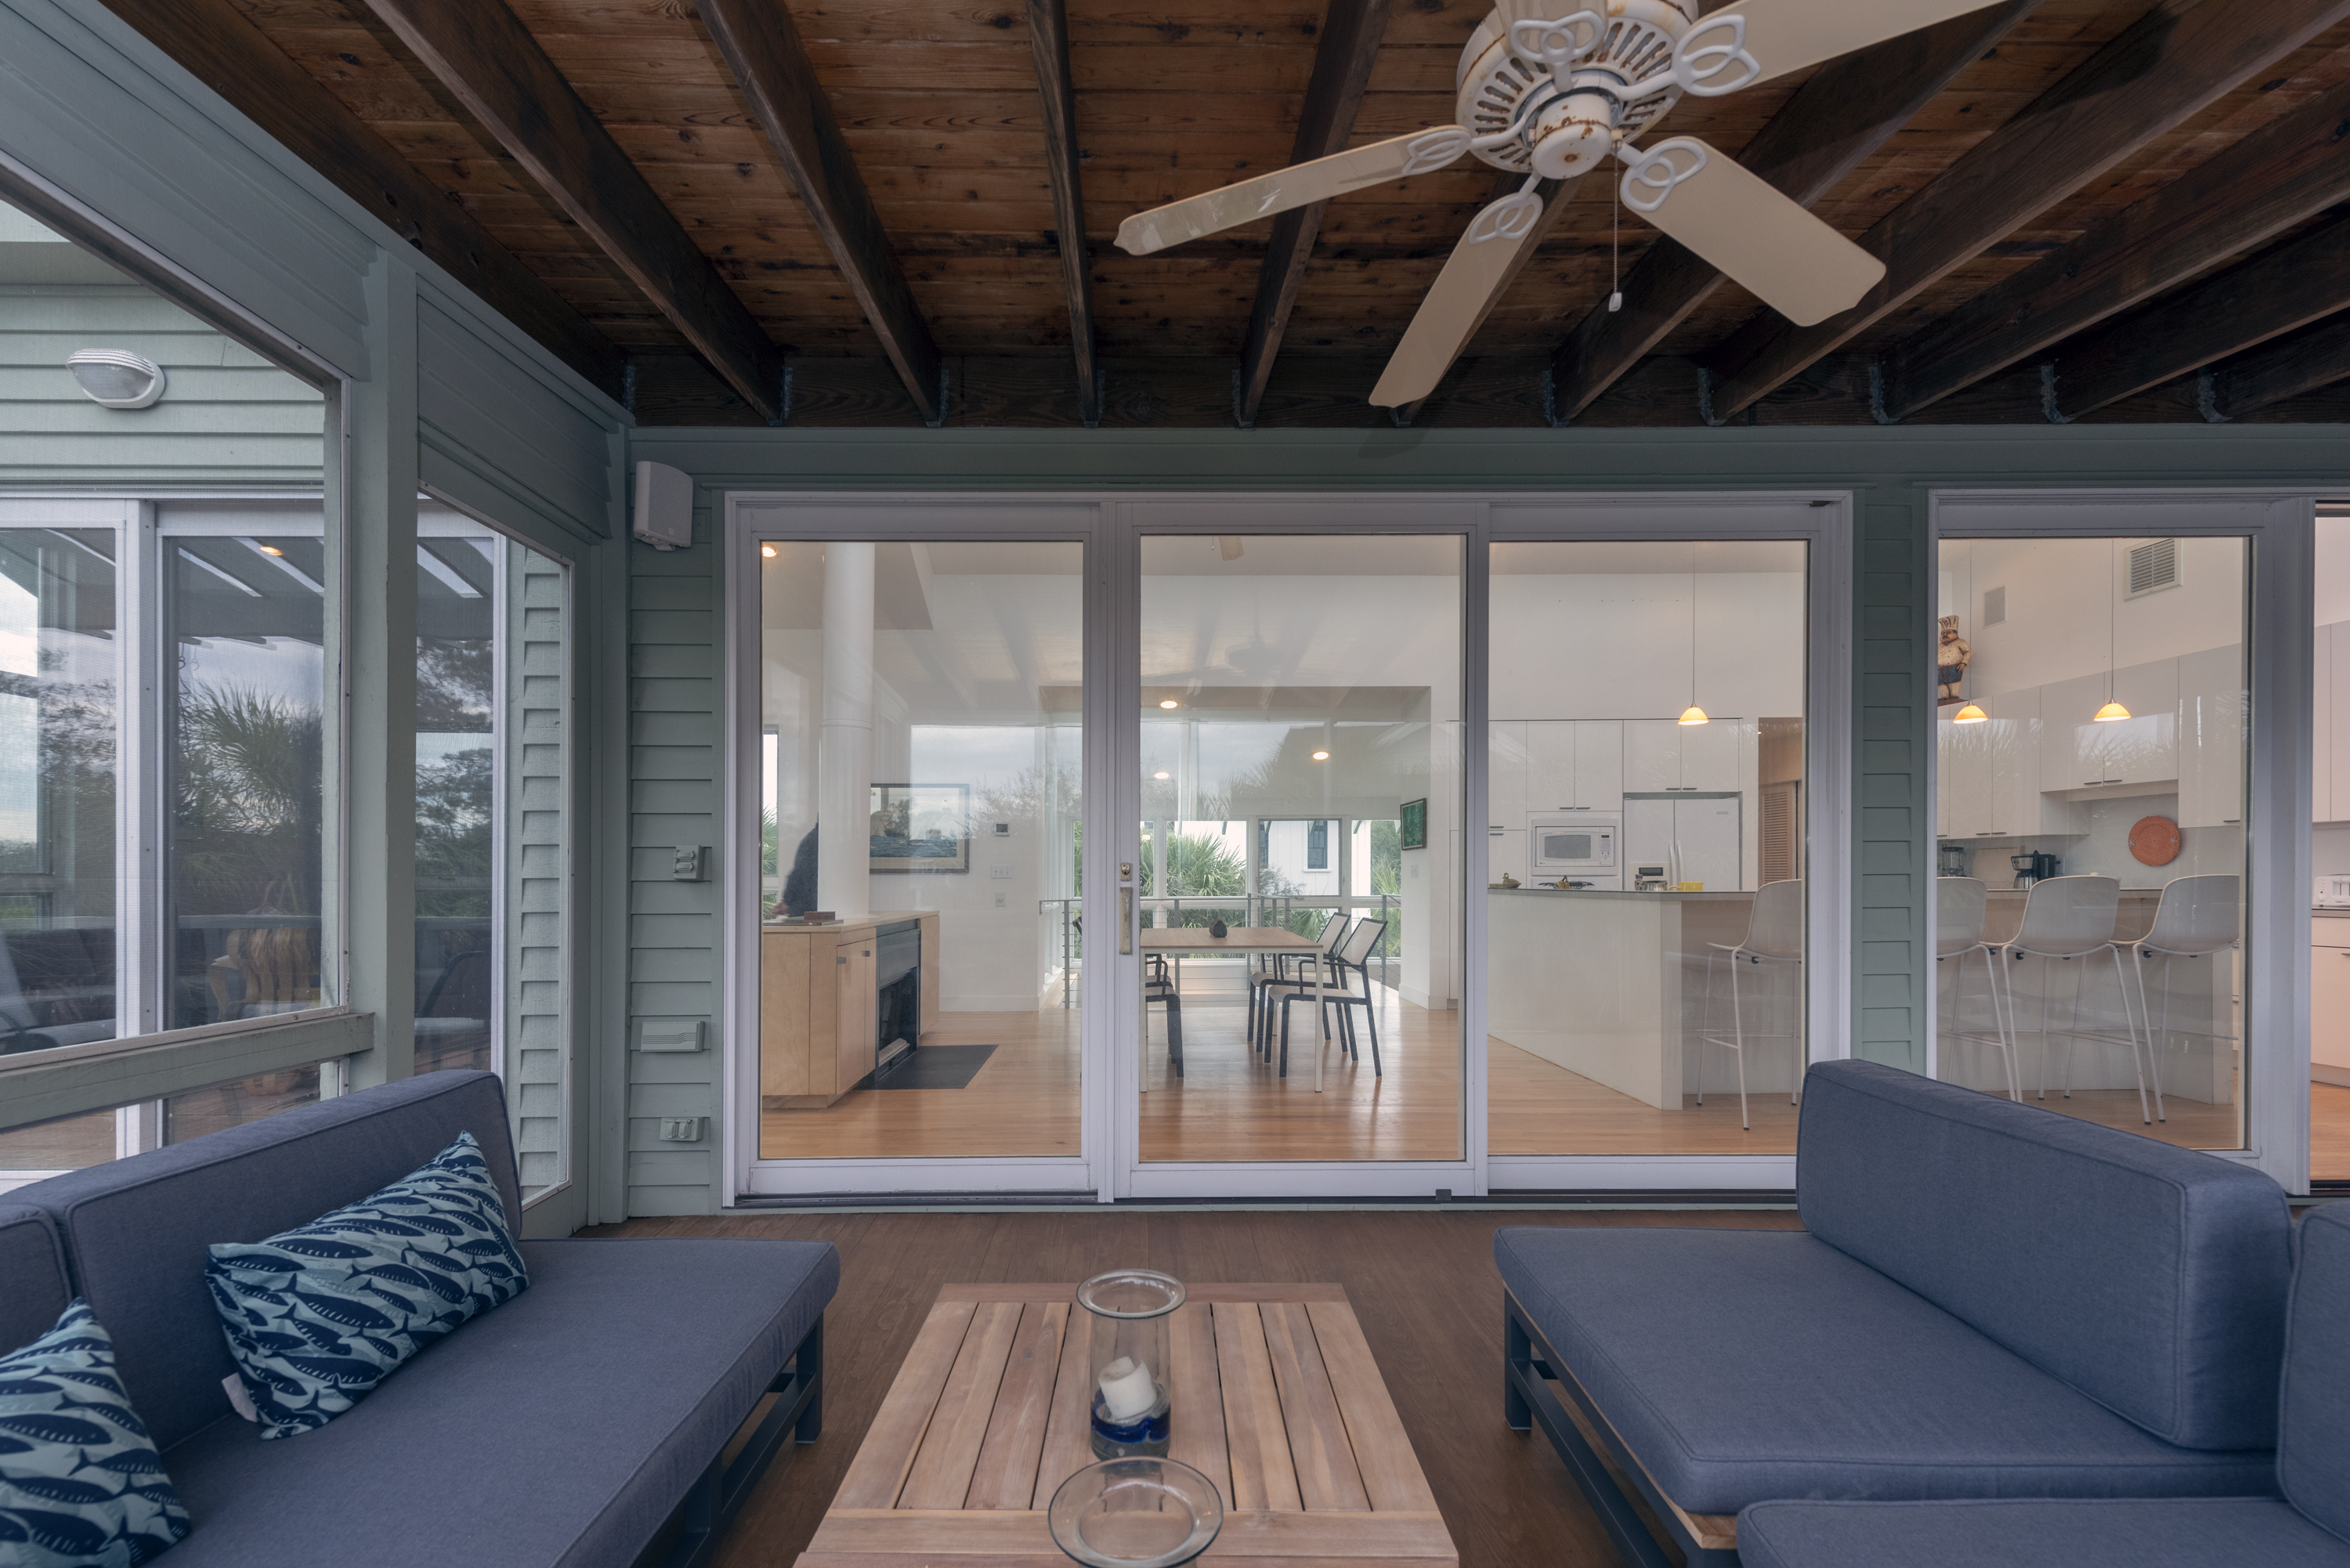 Conversation seating on the screened porch